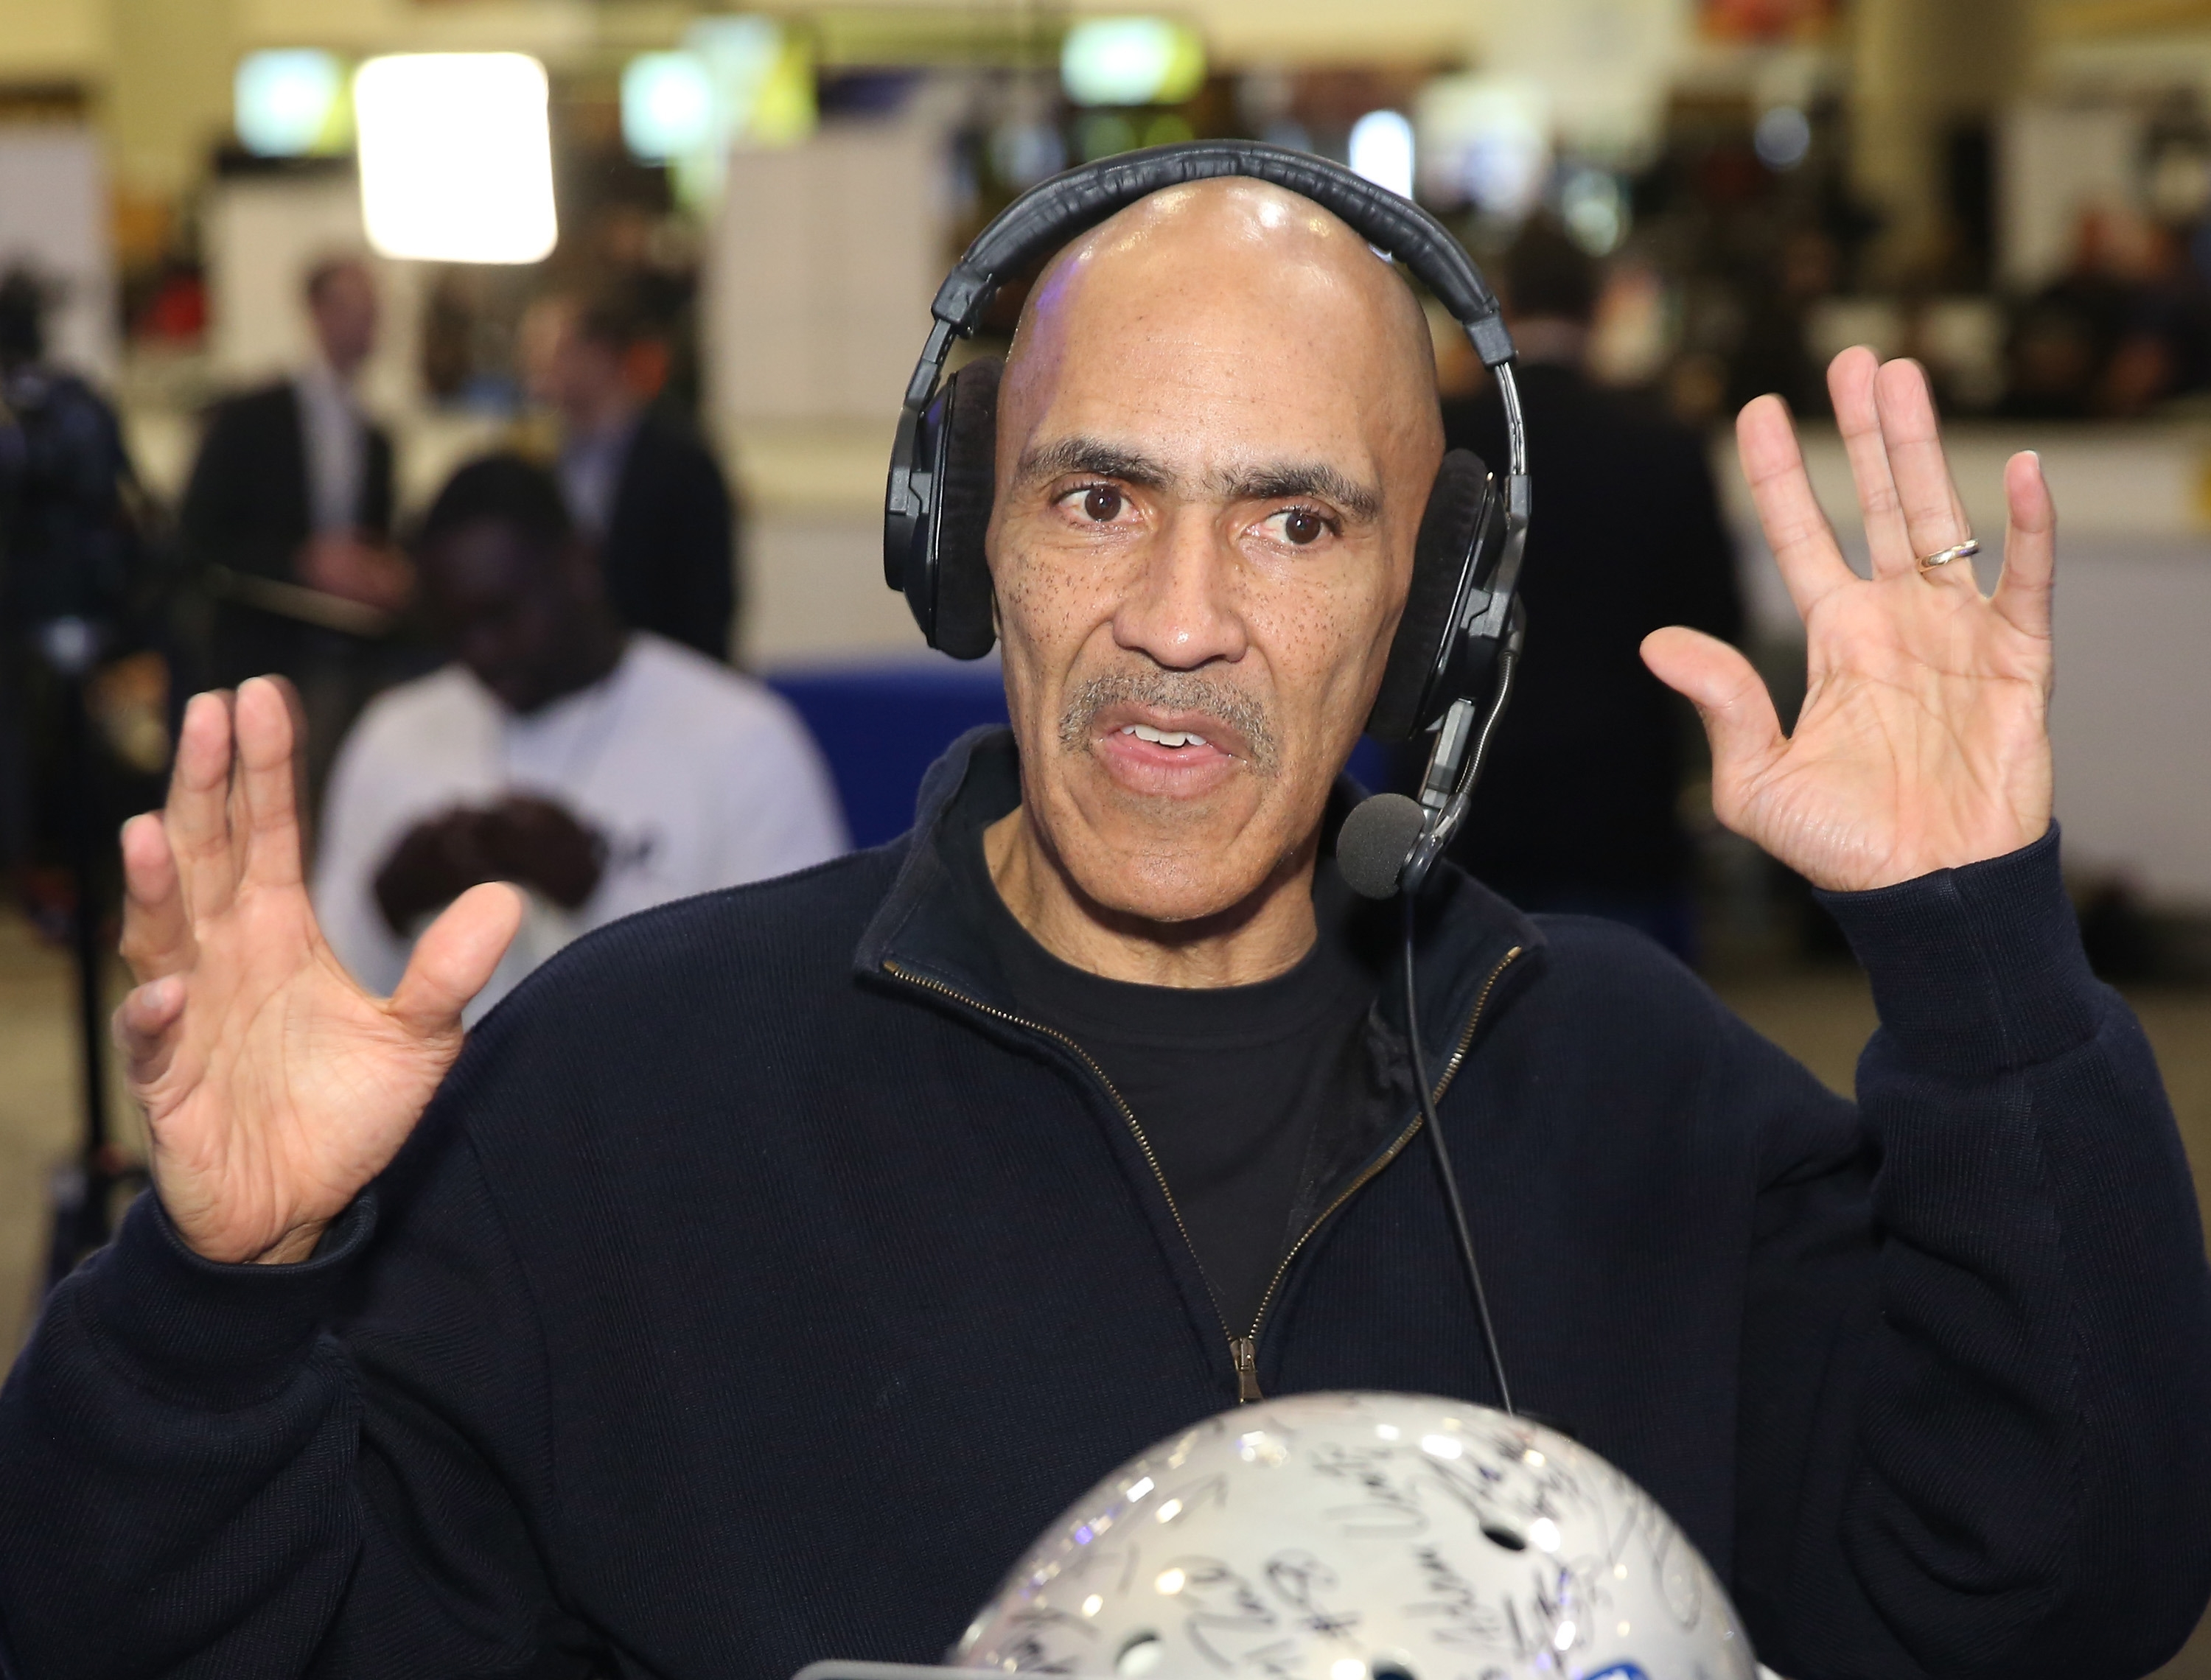 SAN FRANCISCO, CA - FEBRUARY 05:  Former NFL player and head coach Tony Dungy visits the SiriusXM set at Super Bowl 50 Radio Row at the Moscone Center on February 5, 2016 in San Francisco, California.  (Photo by Cindy Ord/Getty Images for Sirius)